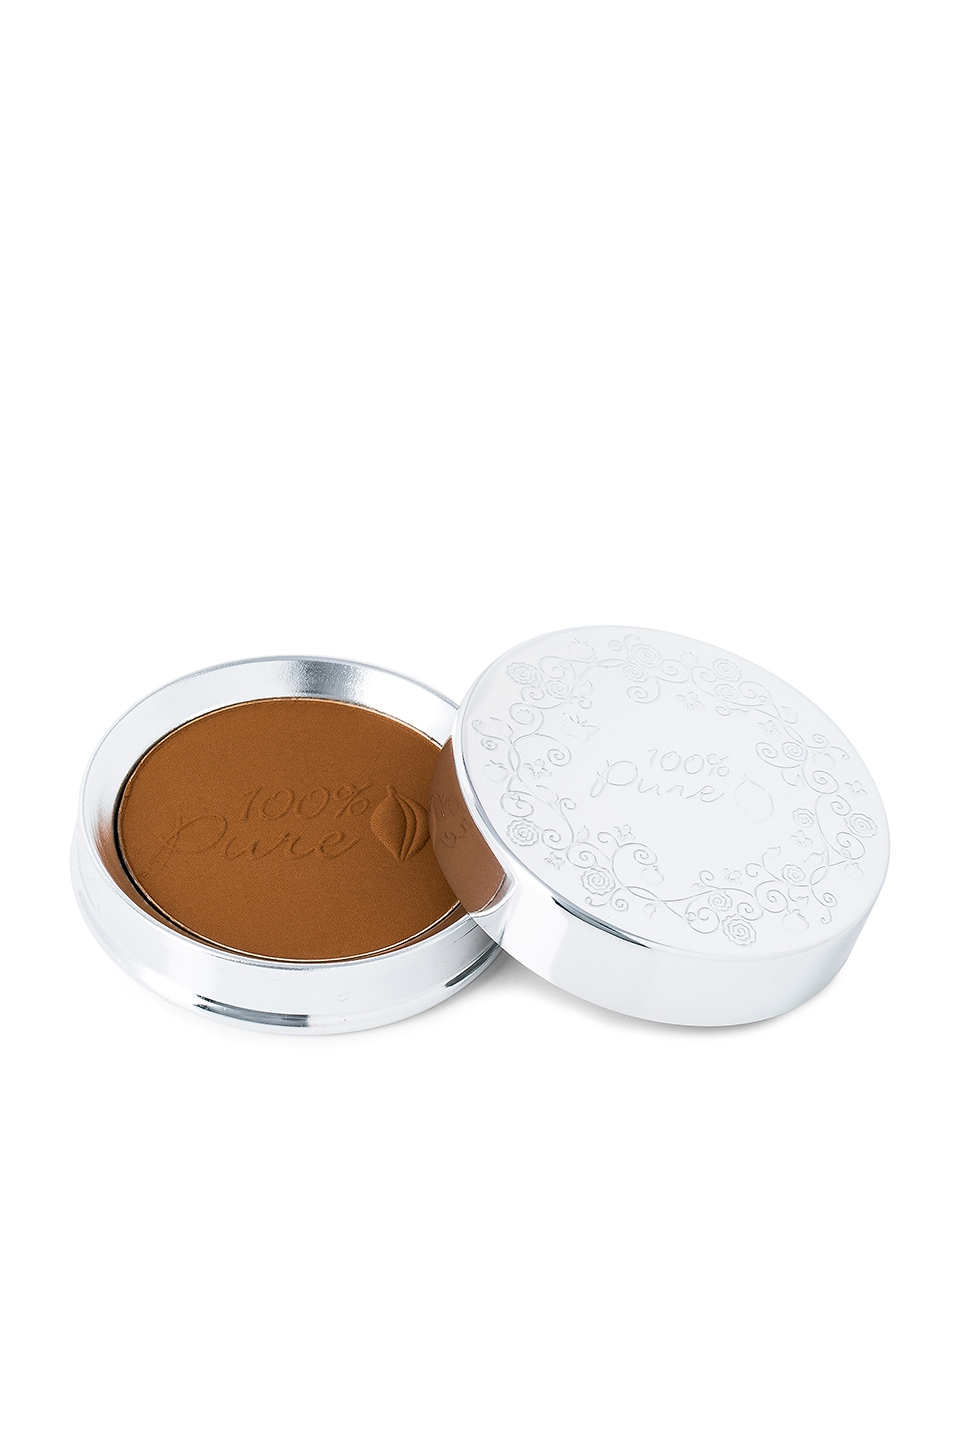 100% Pure Healthy Face Powder Foundation w/ Sun Protection in Cocoa